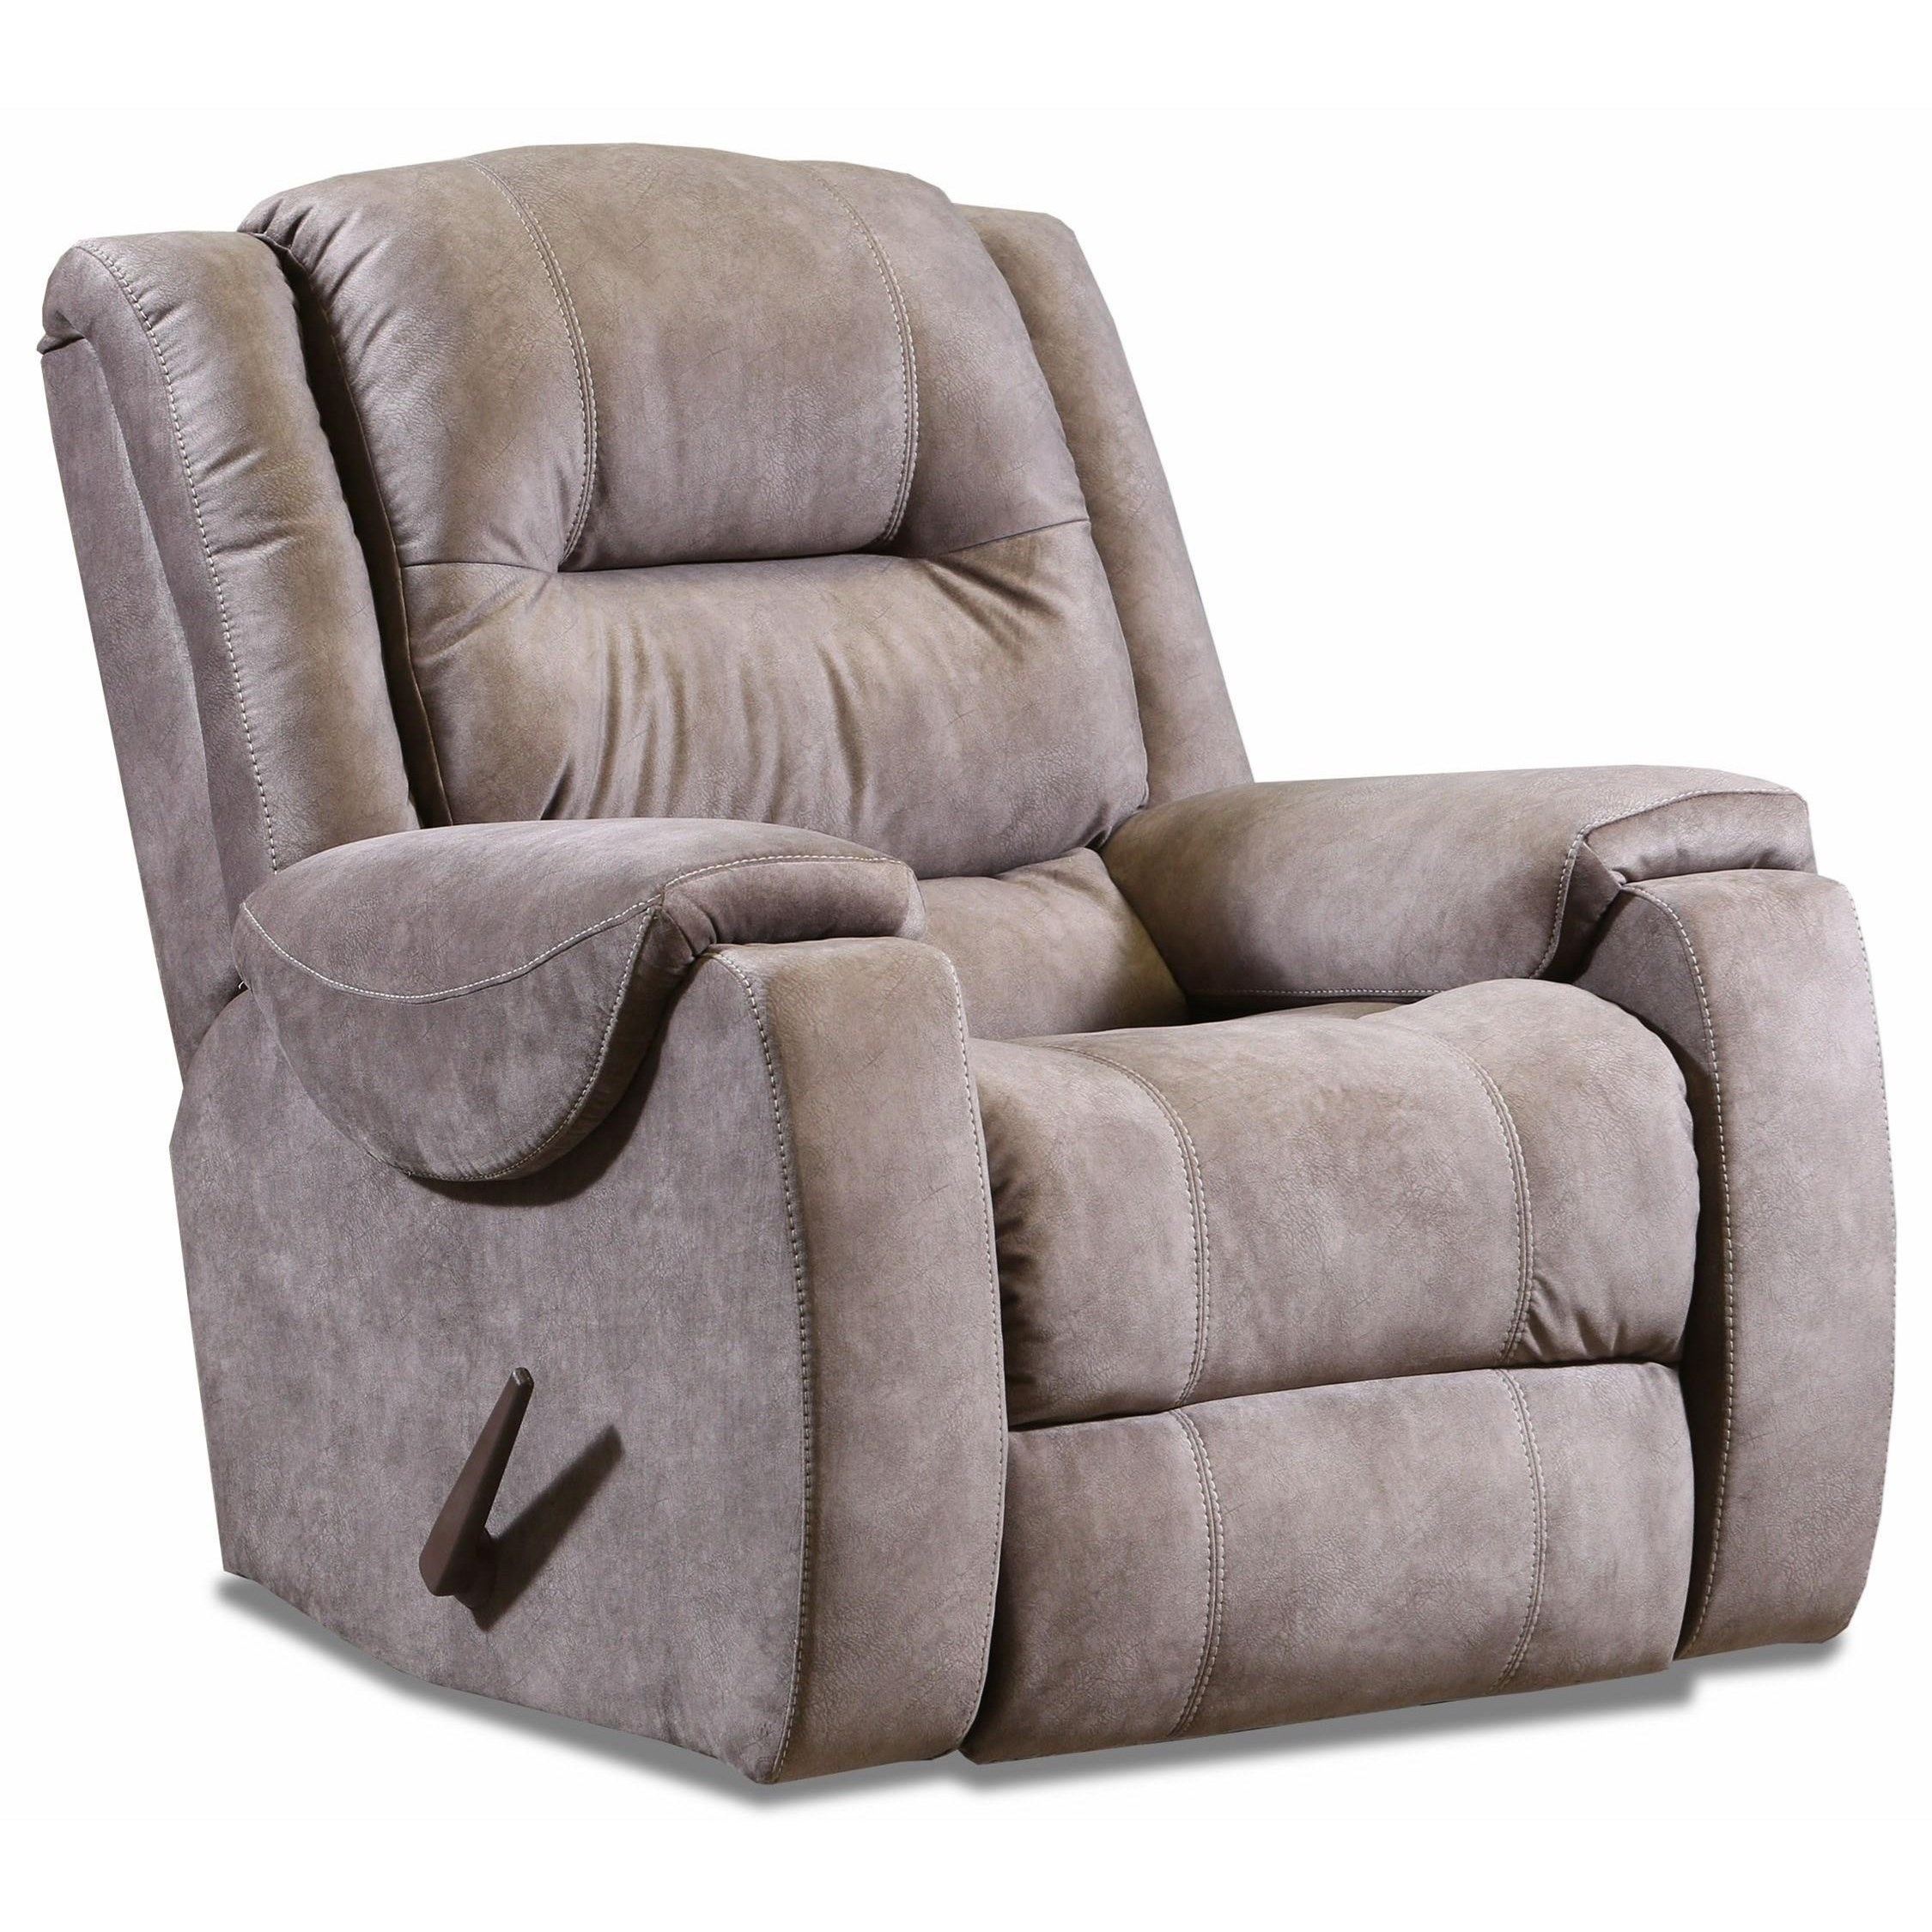 2609 Recliner by Peak Living at Prime Brothers Furniture